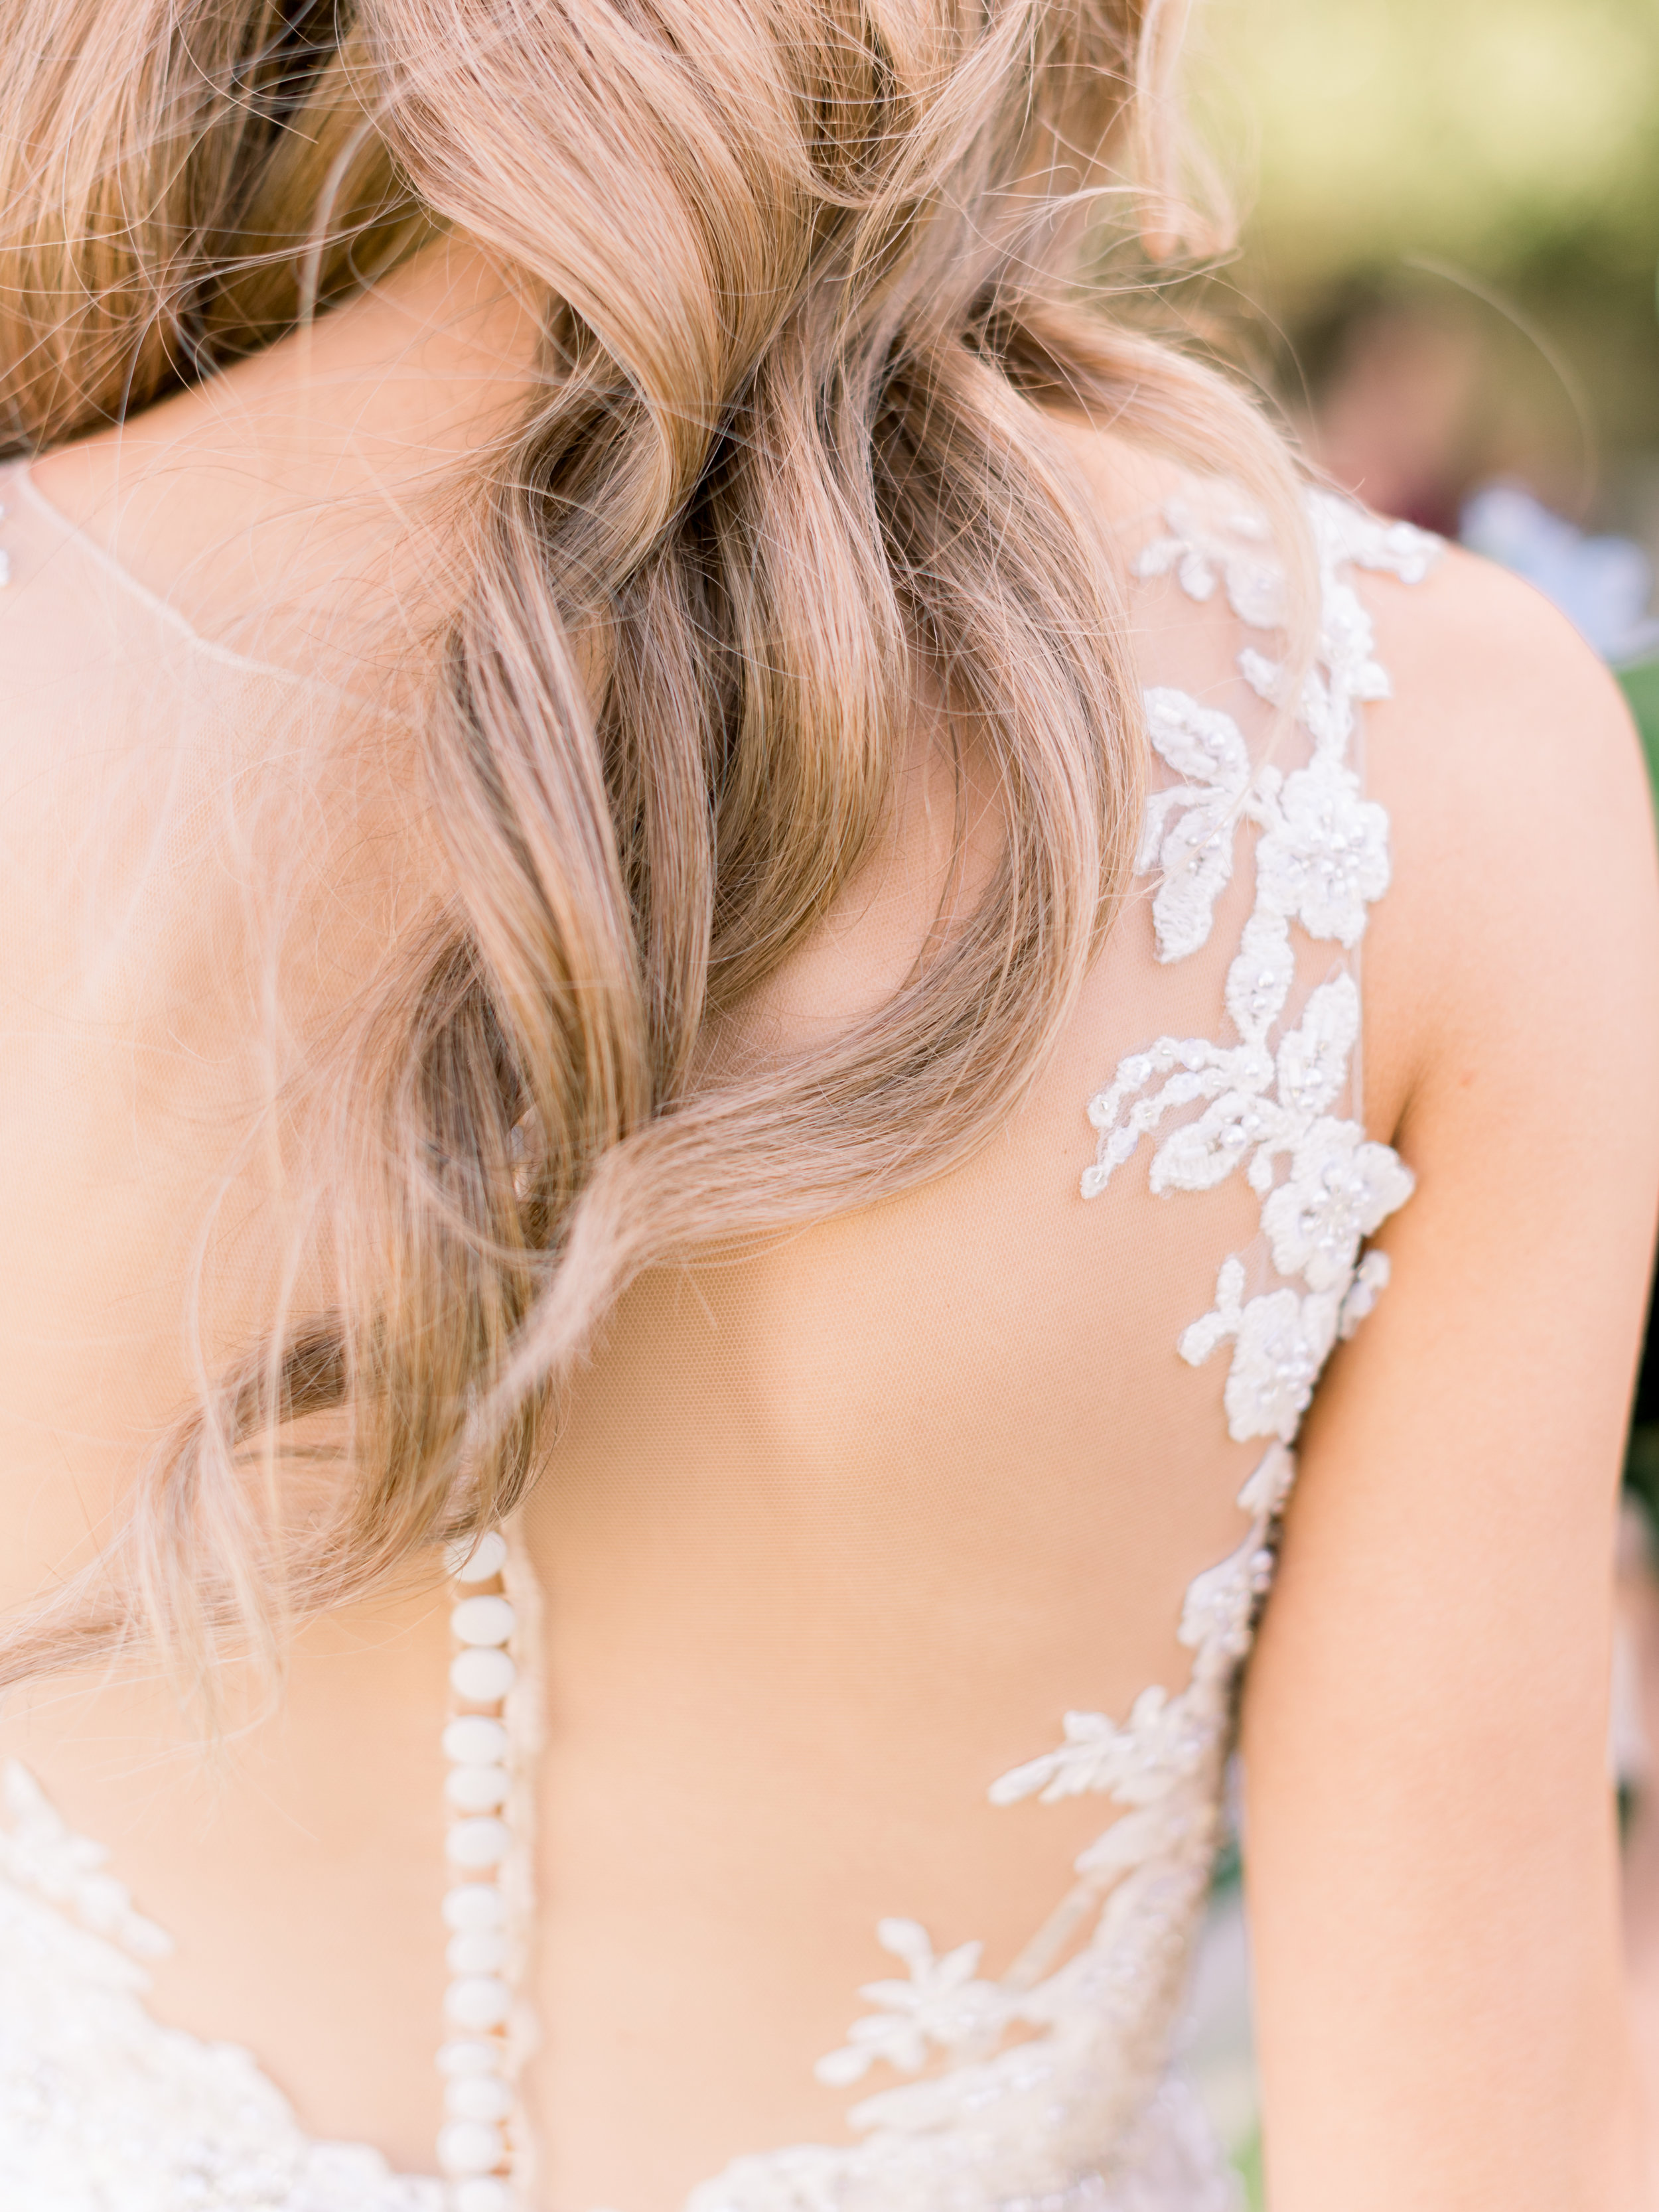 the-bride's-curls-trailing-down-her-back.jpg